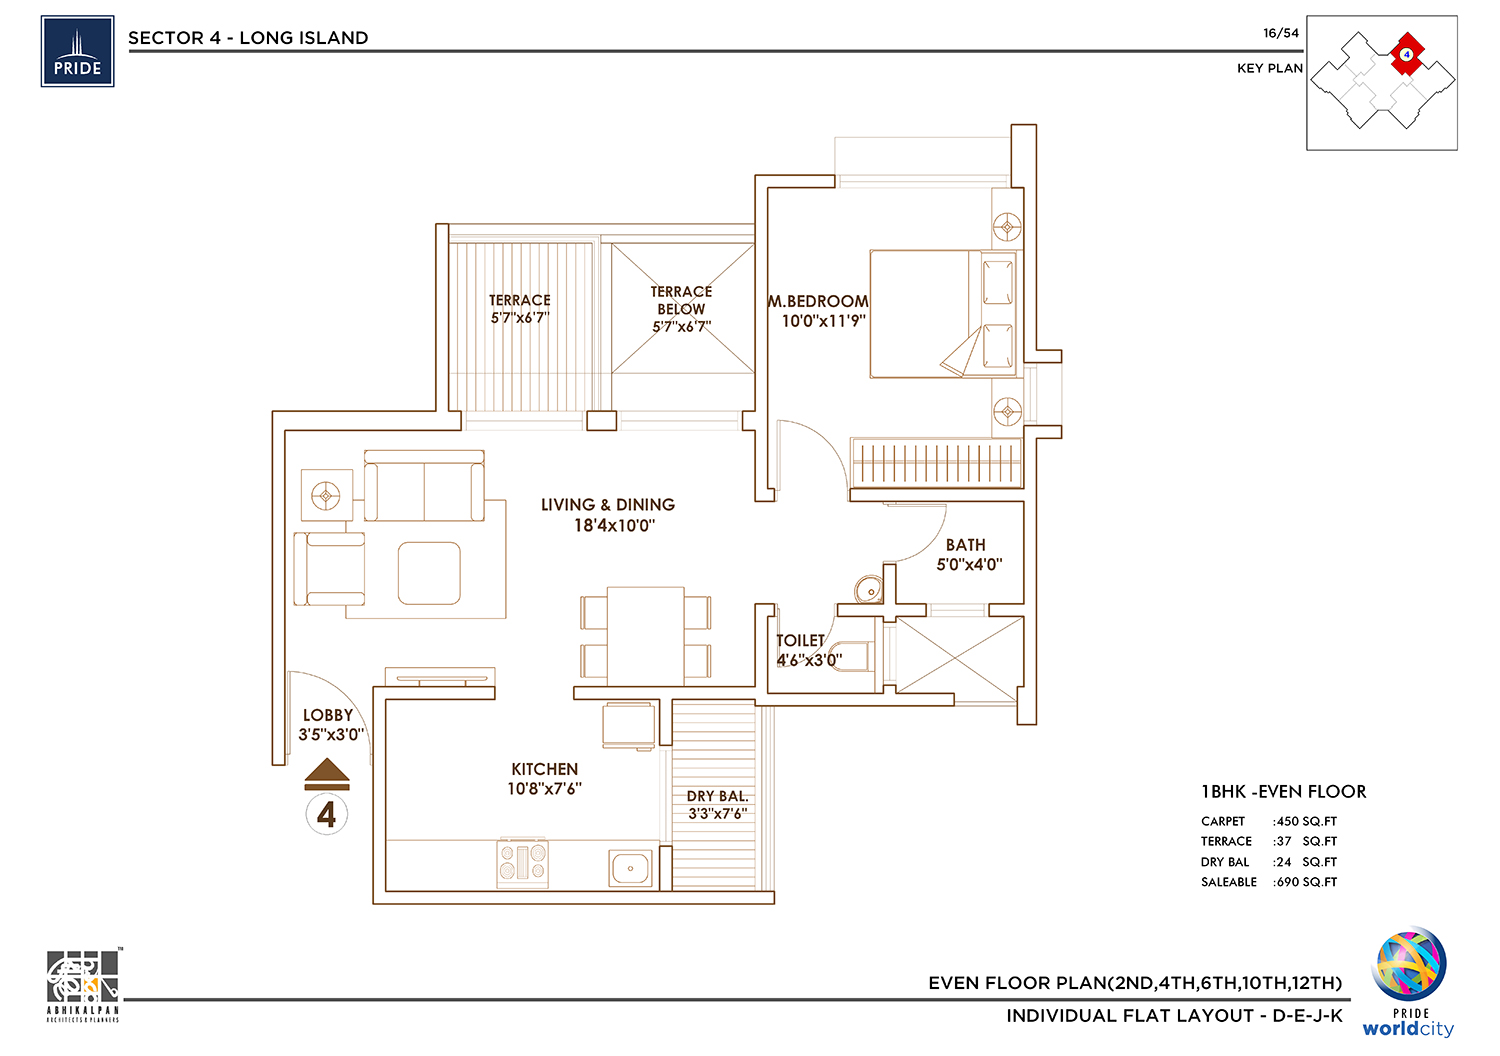 Long Island - 1 BHK Floor Plan